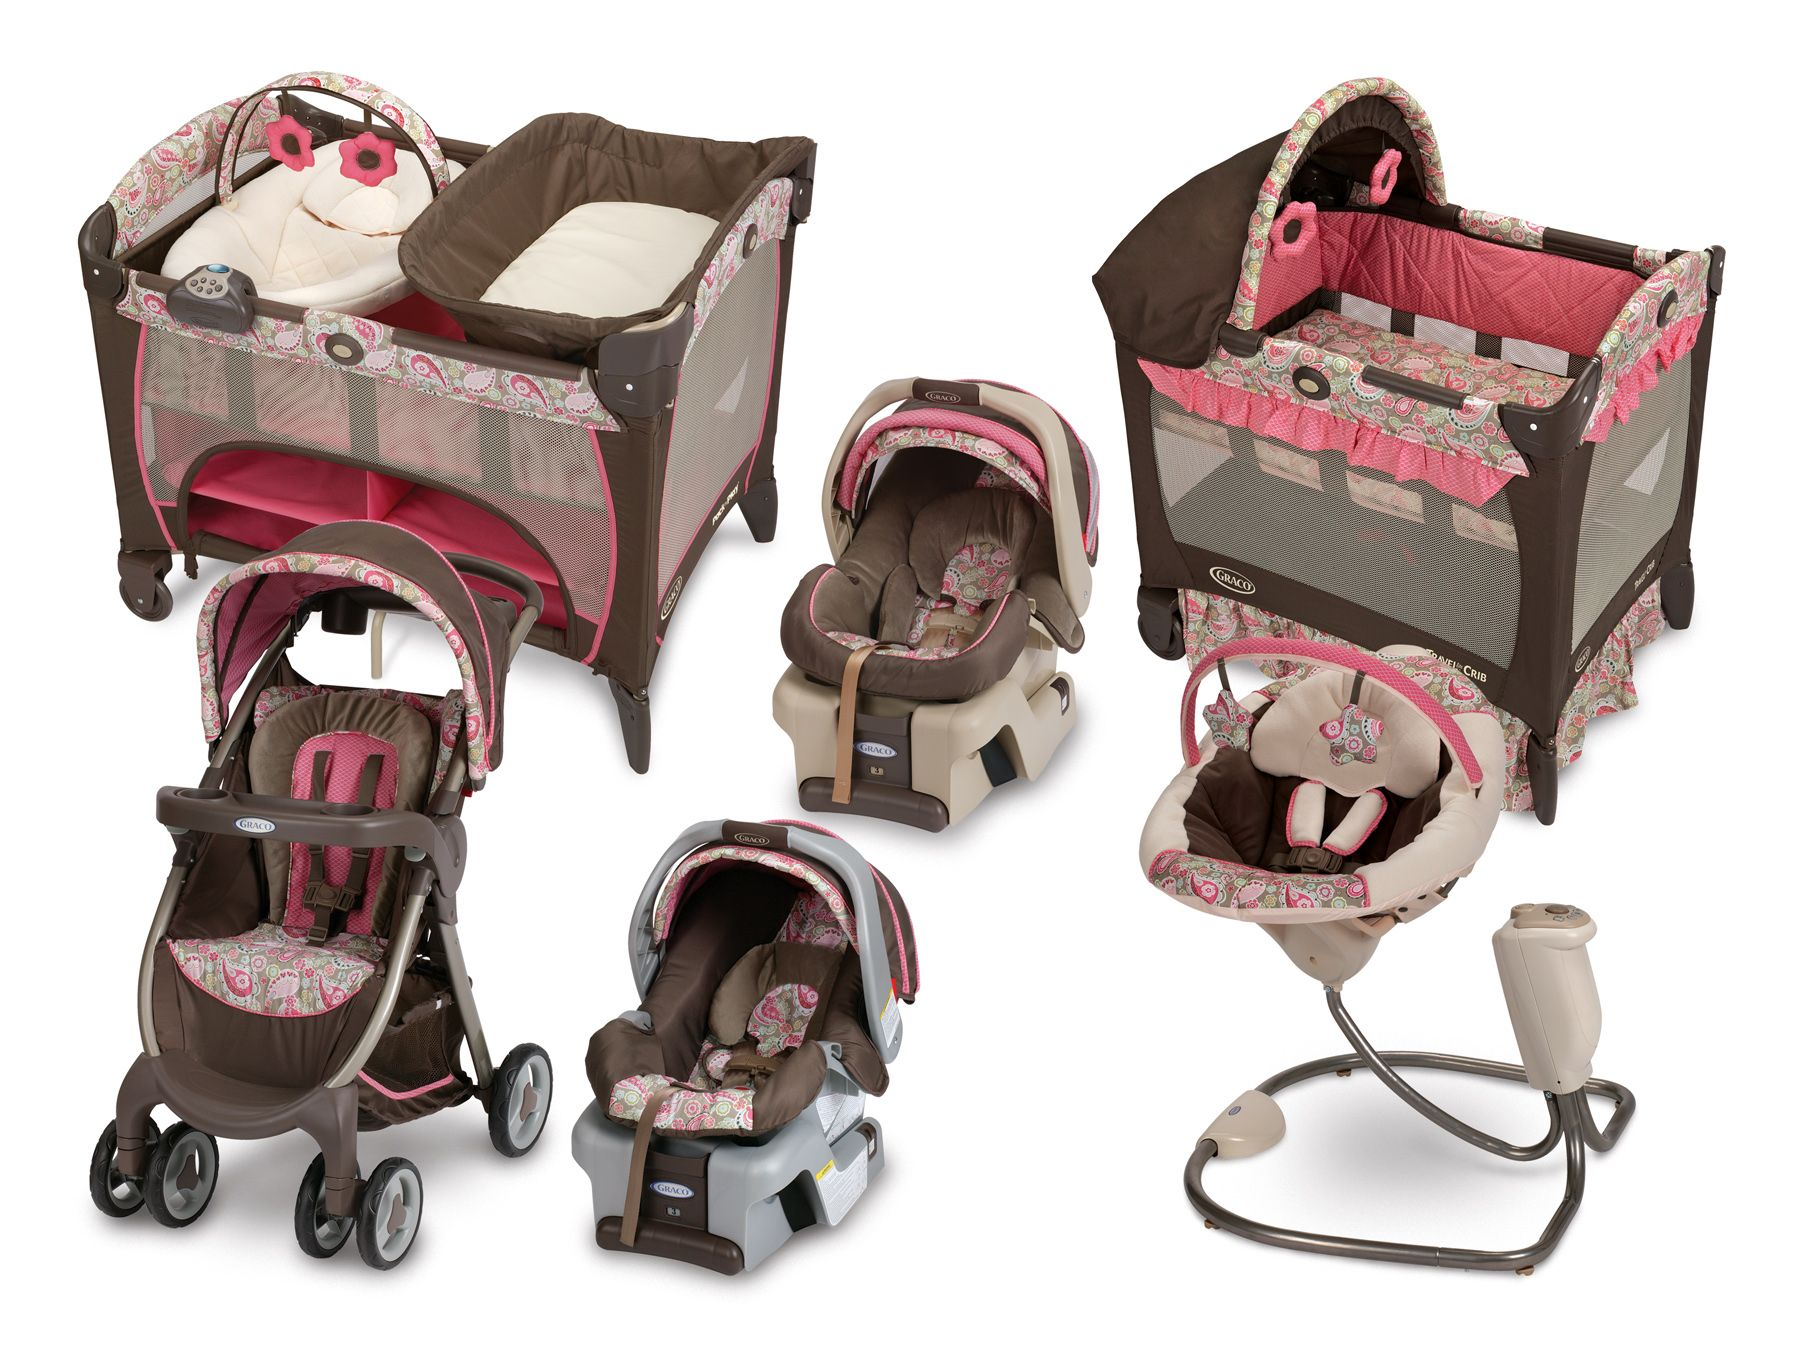 Graco high chair pink and brown - Girl Fold And Go Crib Station Deluxe Comfy Cove Swing